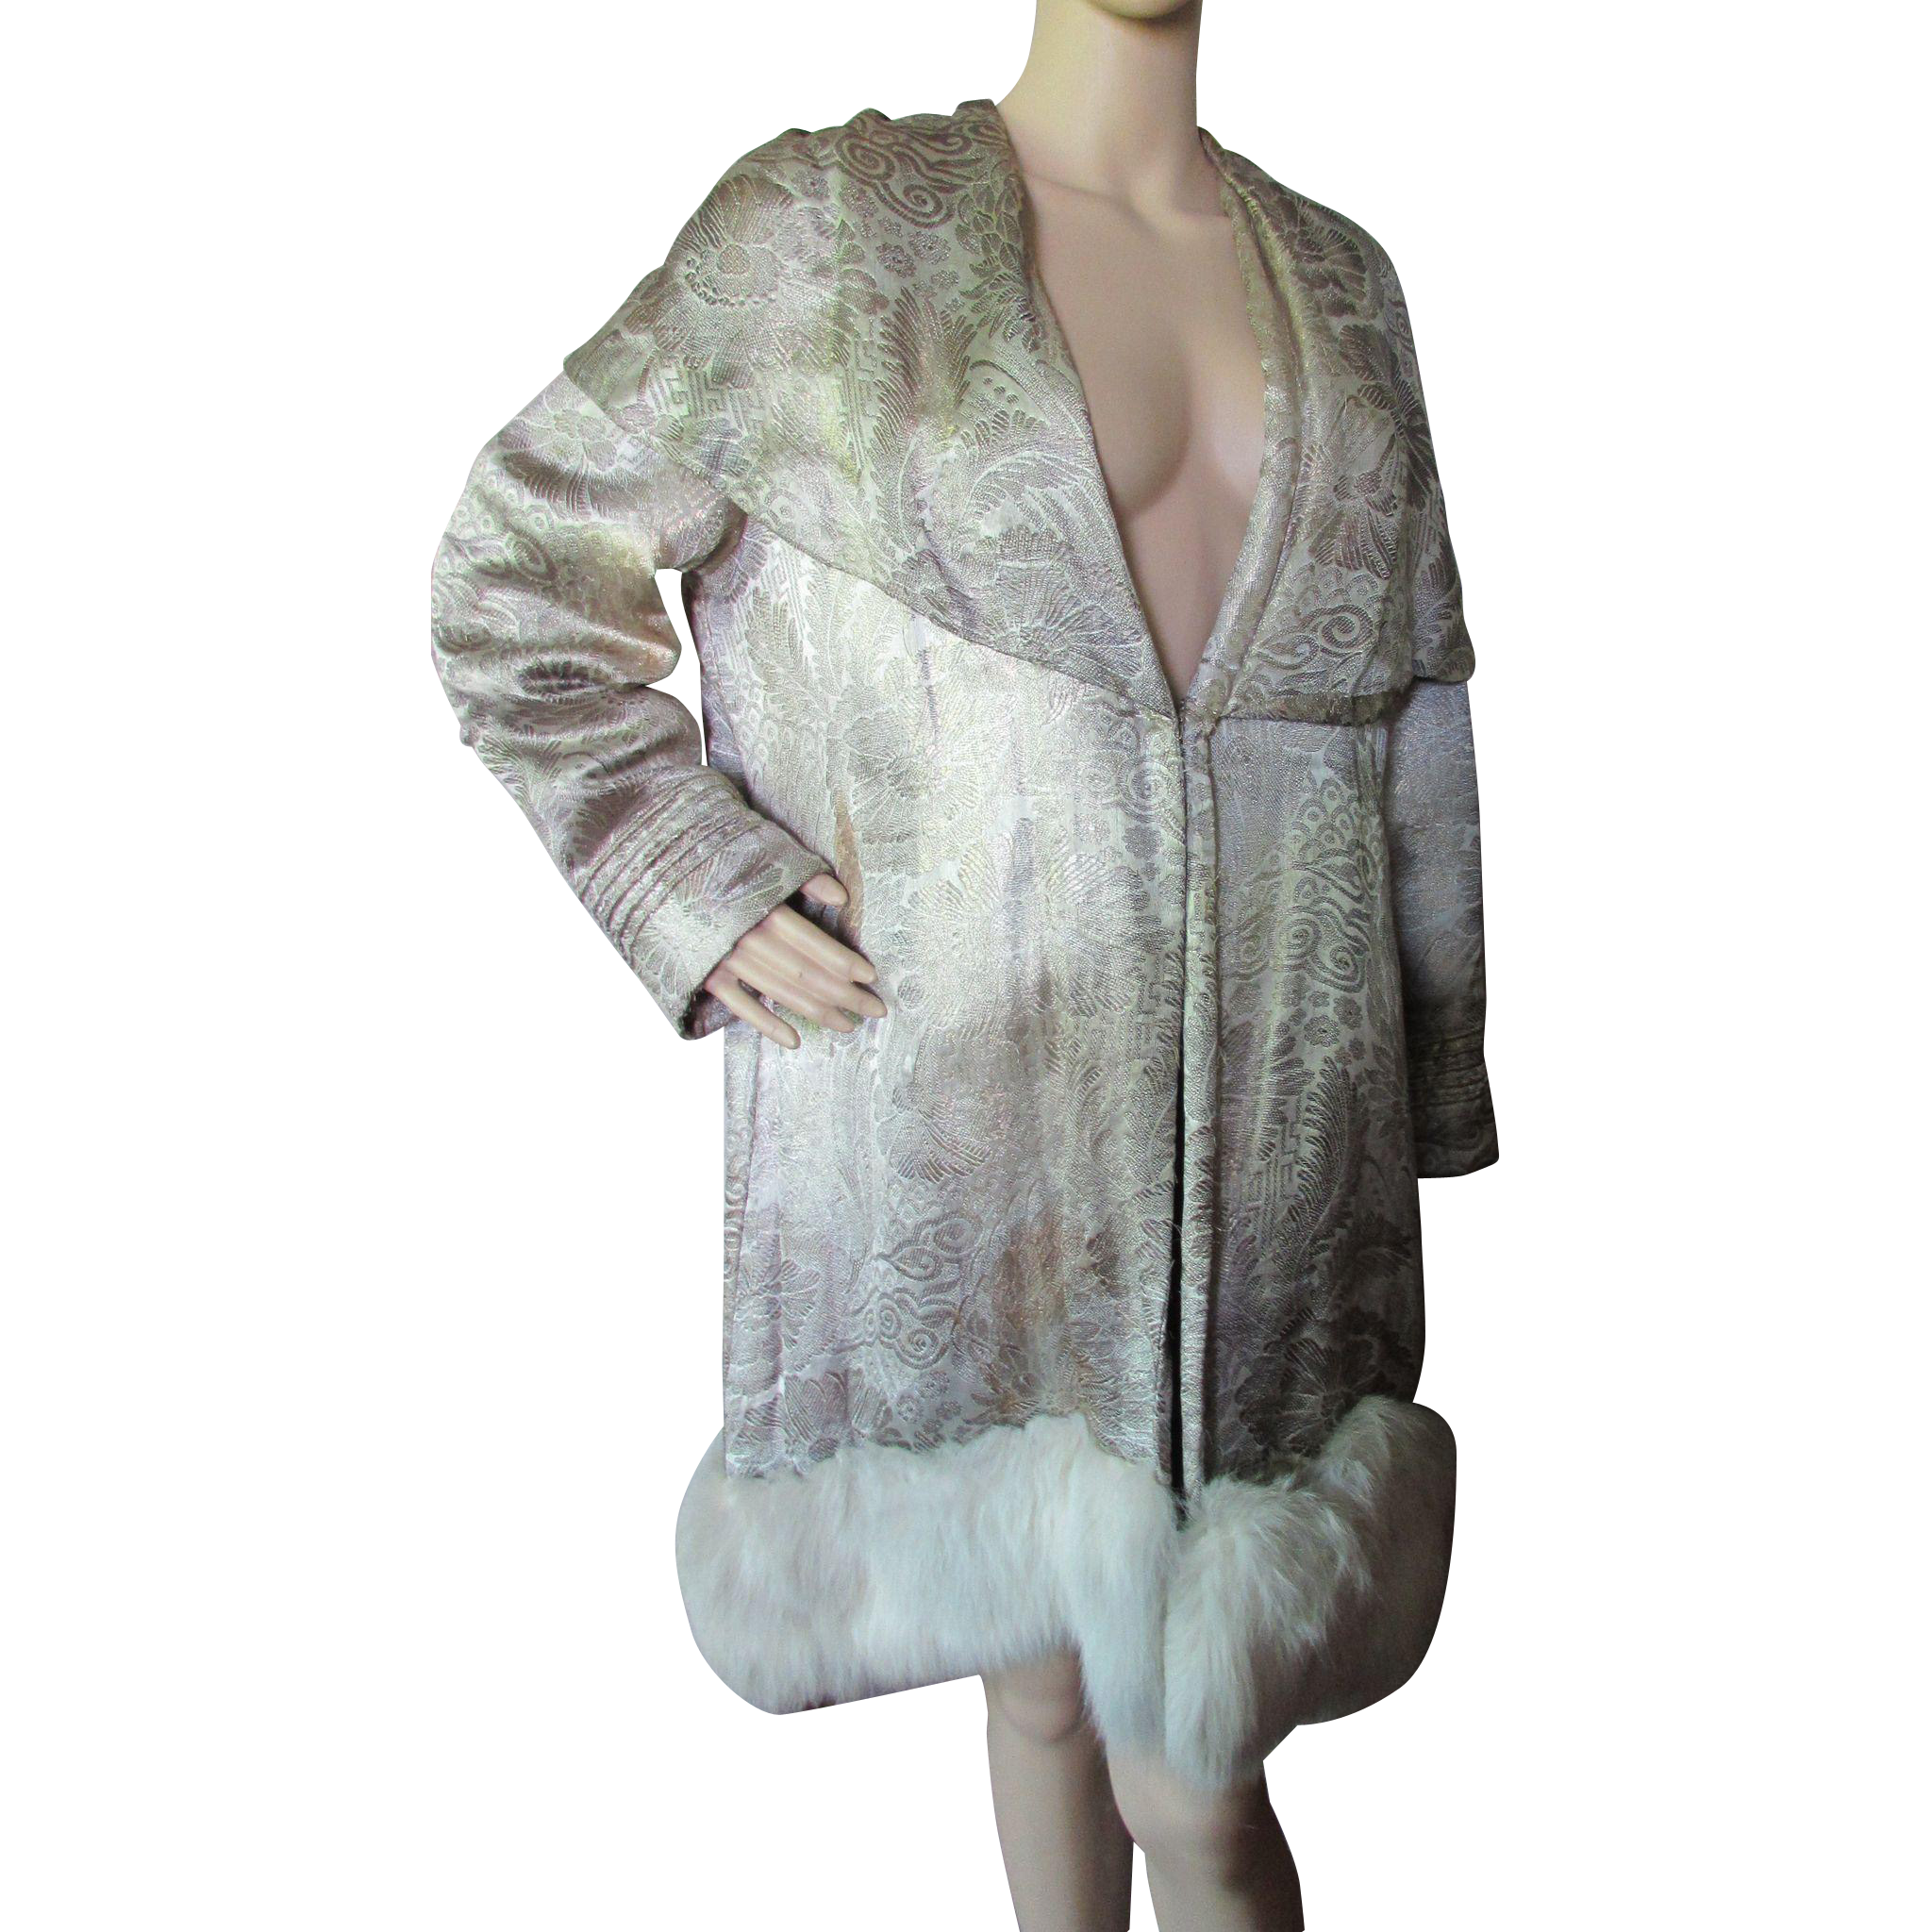 1920 Era Deco Opera Coat in Metallic Brocade and Fur Franklin Simon Company